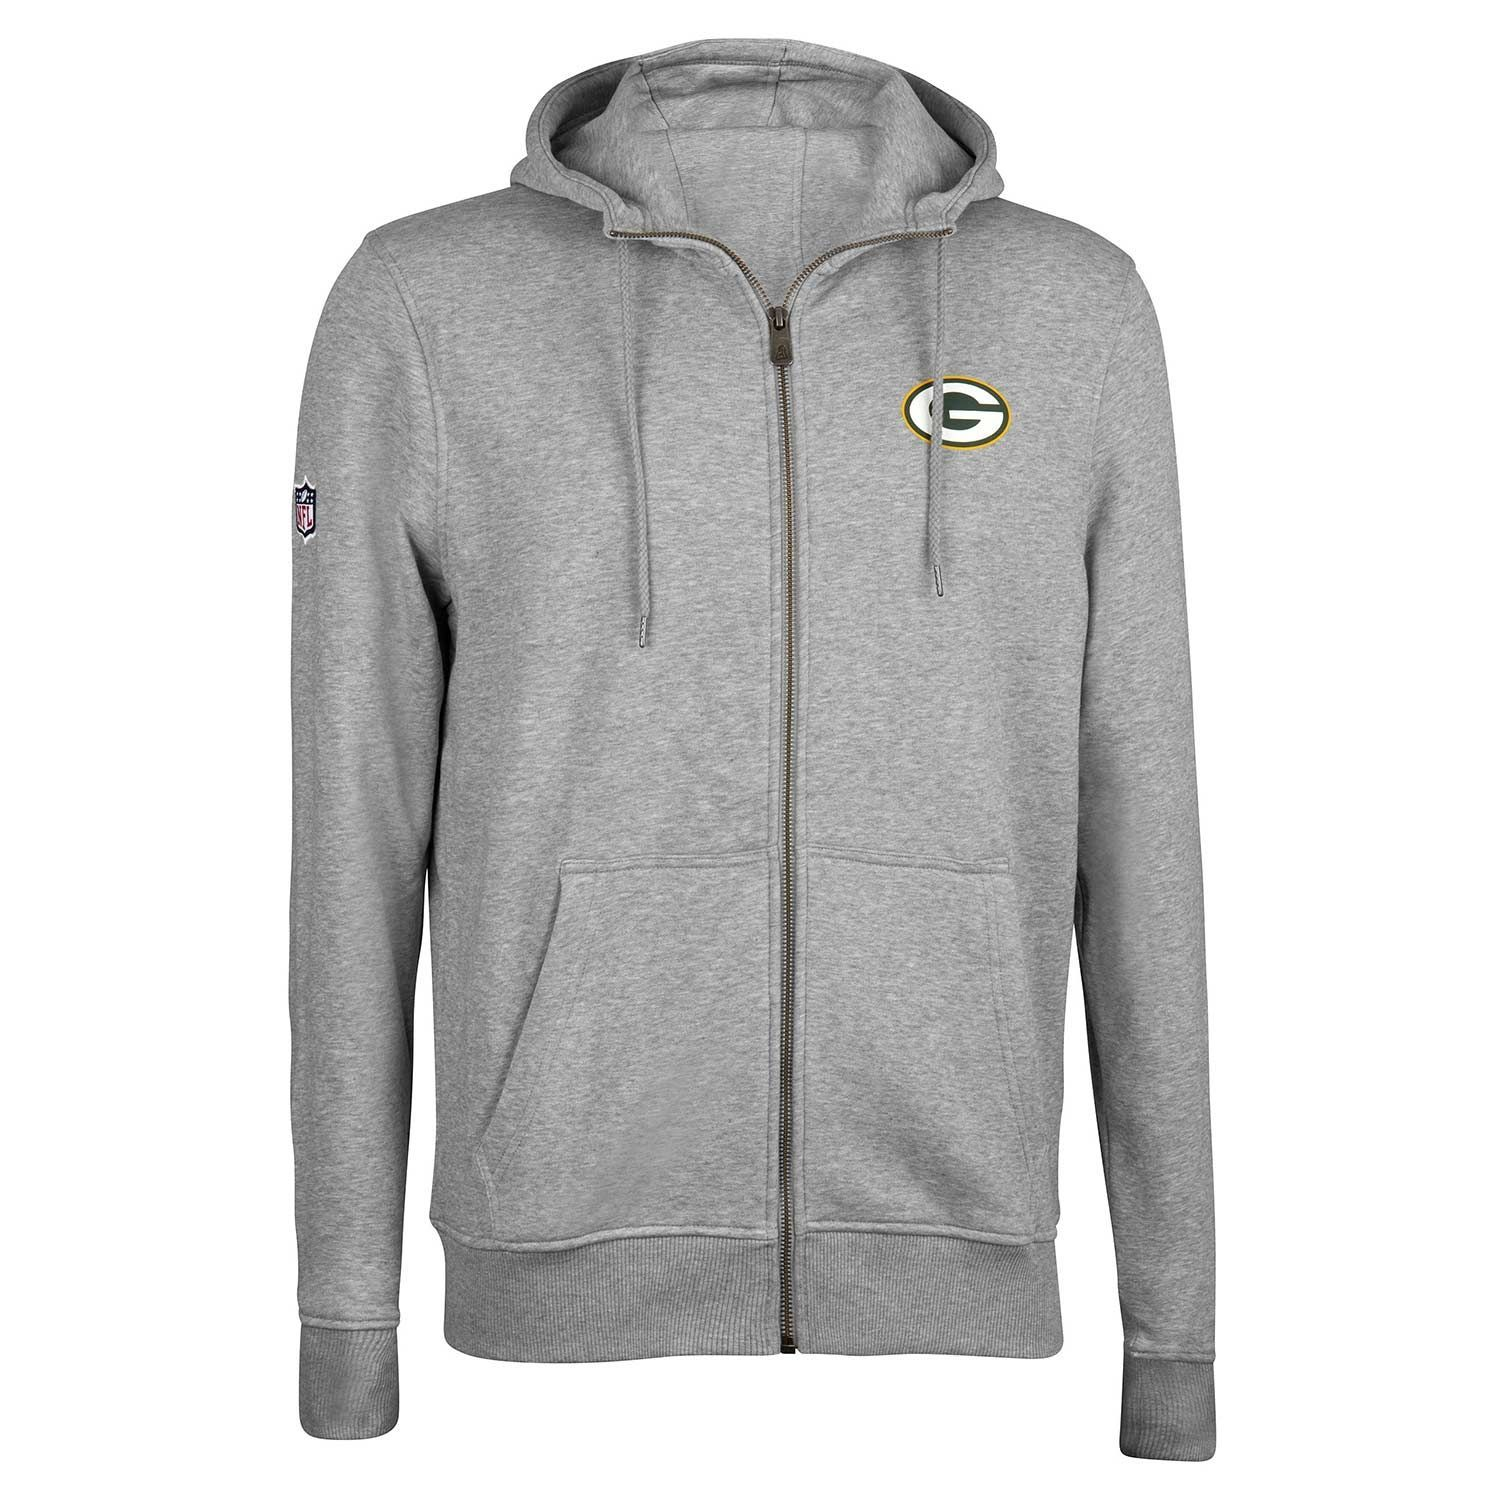 6b15932c4 New Era Green Bay Packers NO 19 Full-Zip NFL Hoodie Grey